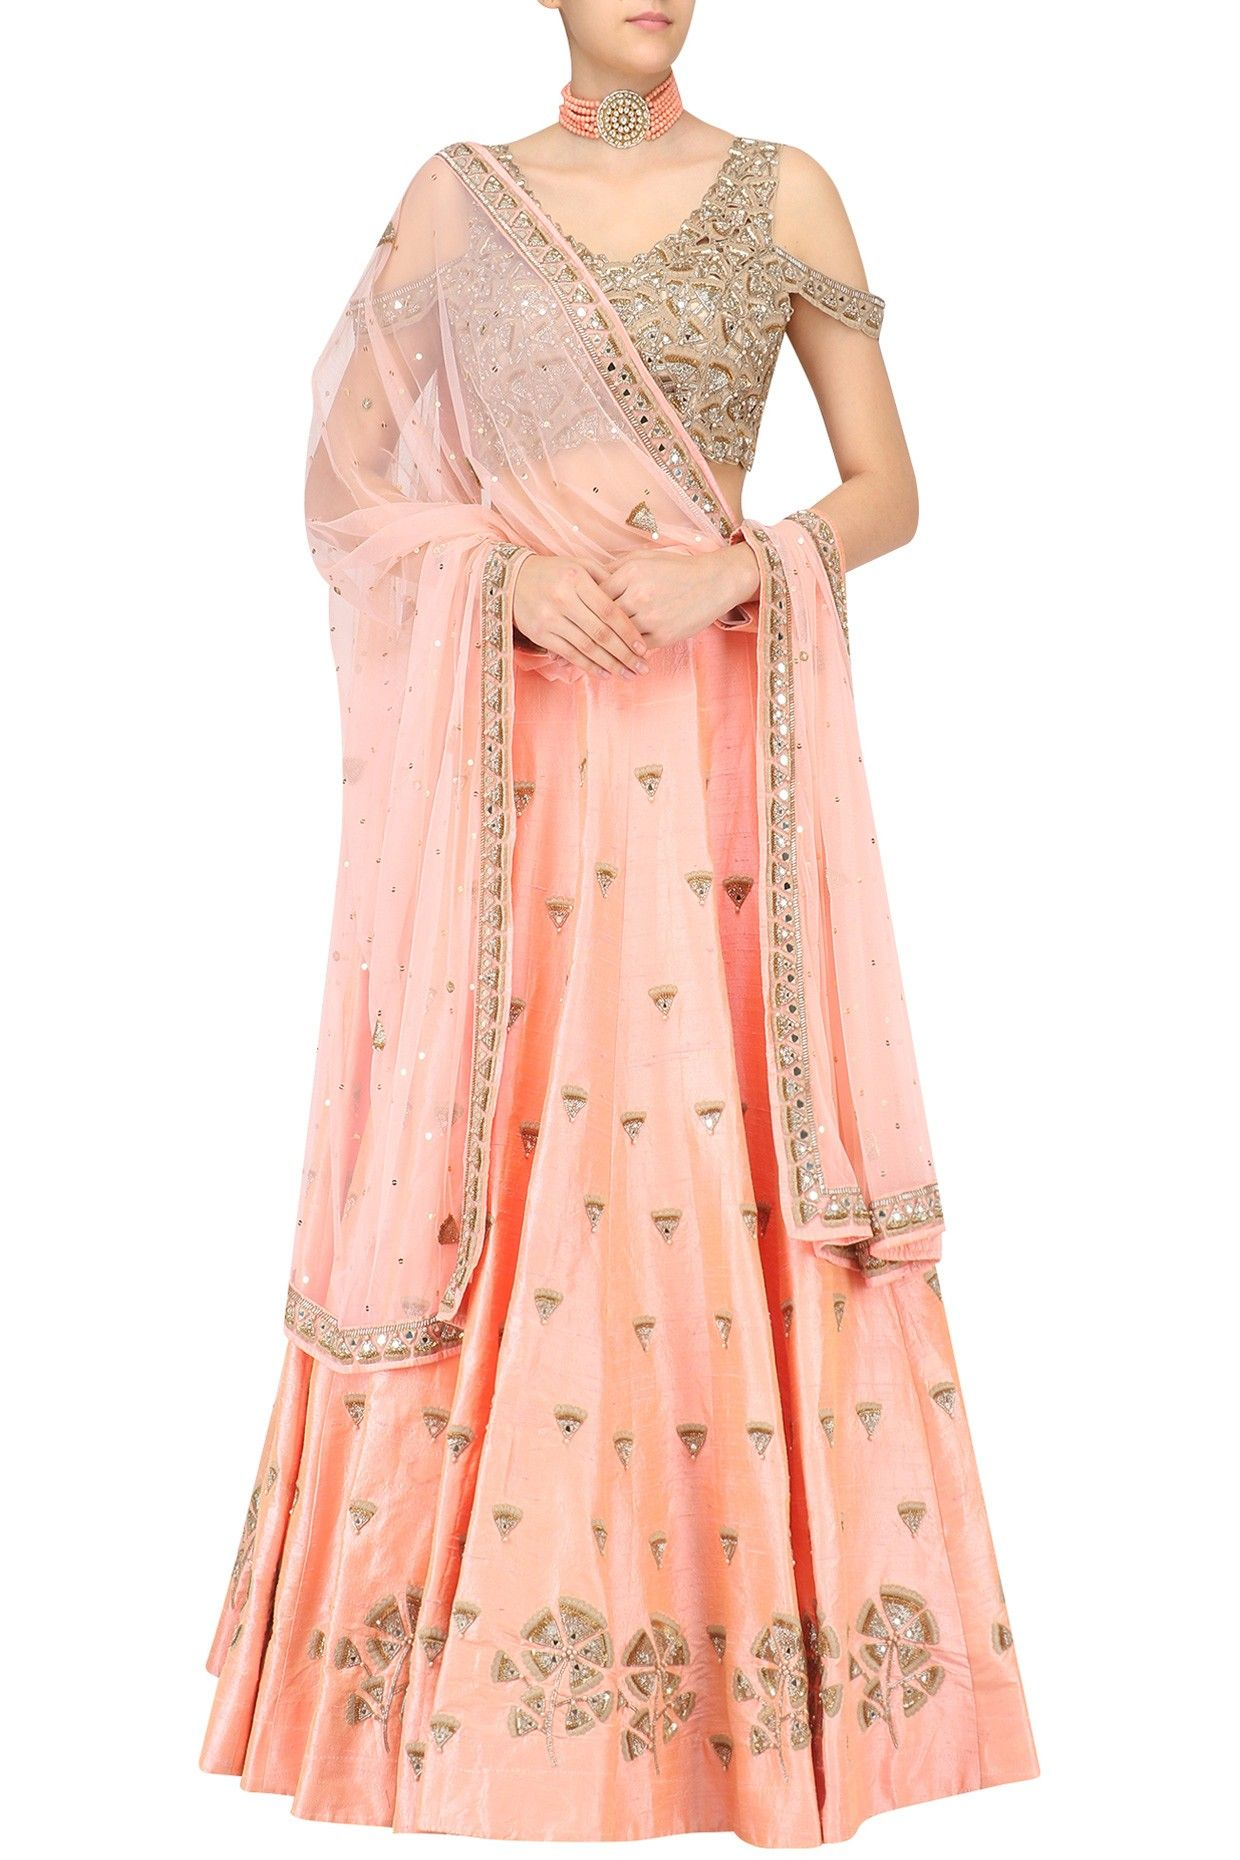 Nude Peach Gingko Embroidered Lehenga Skirt And Cold Shoulder Blouse